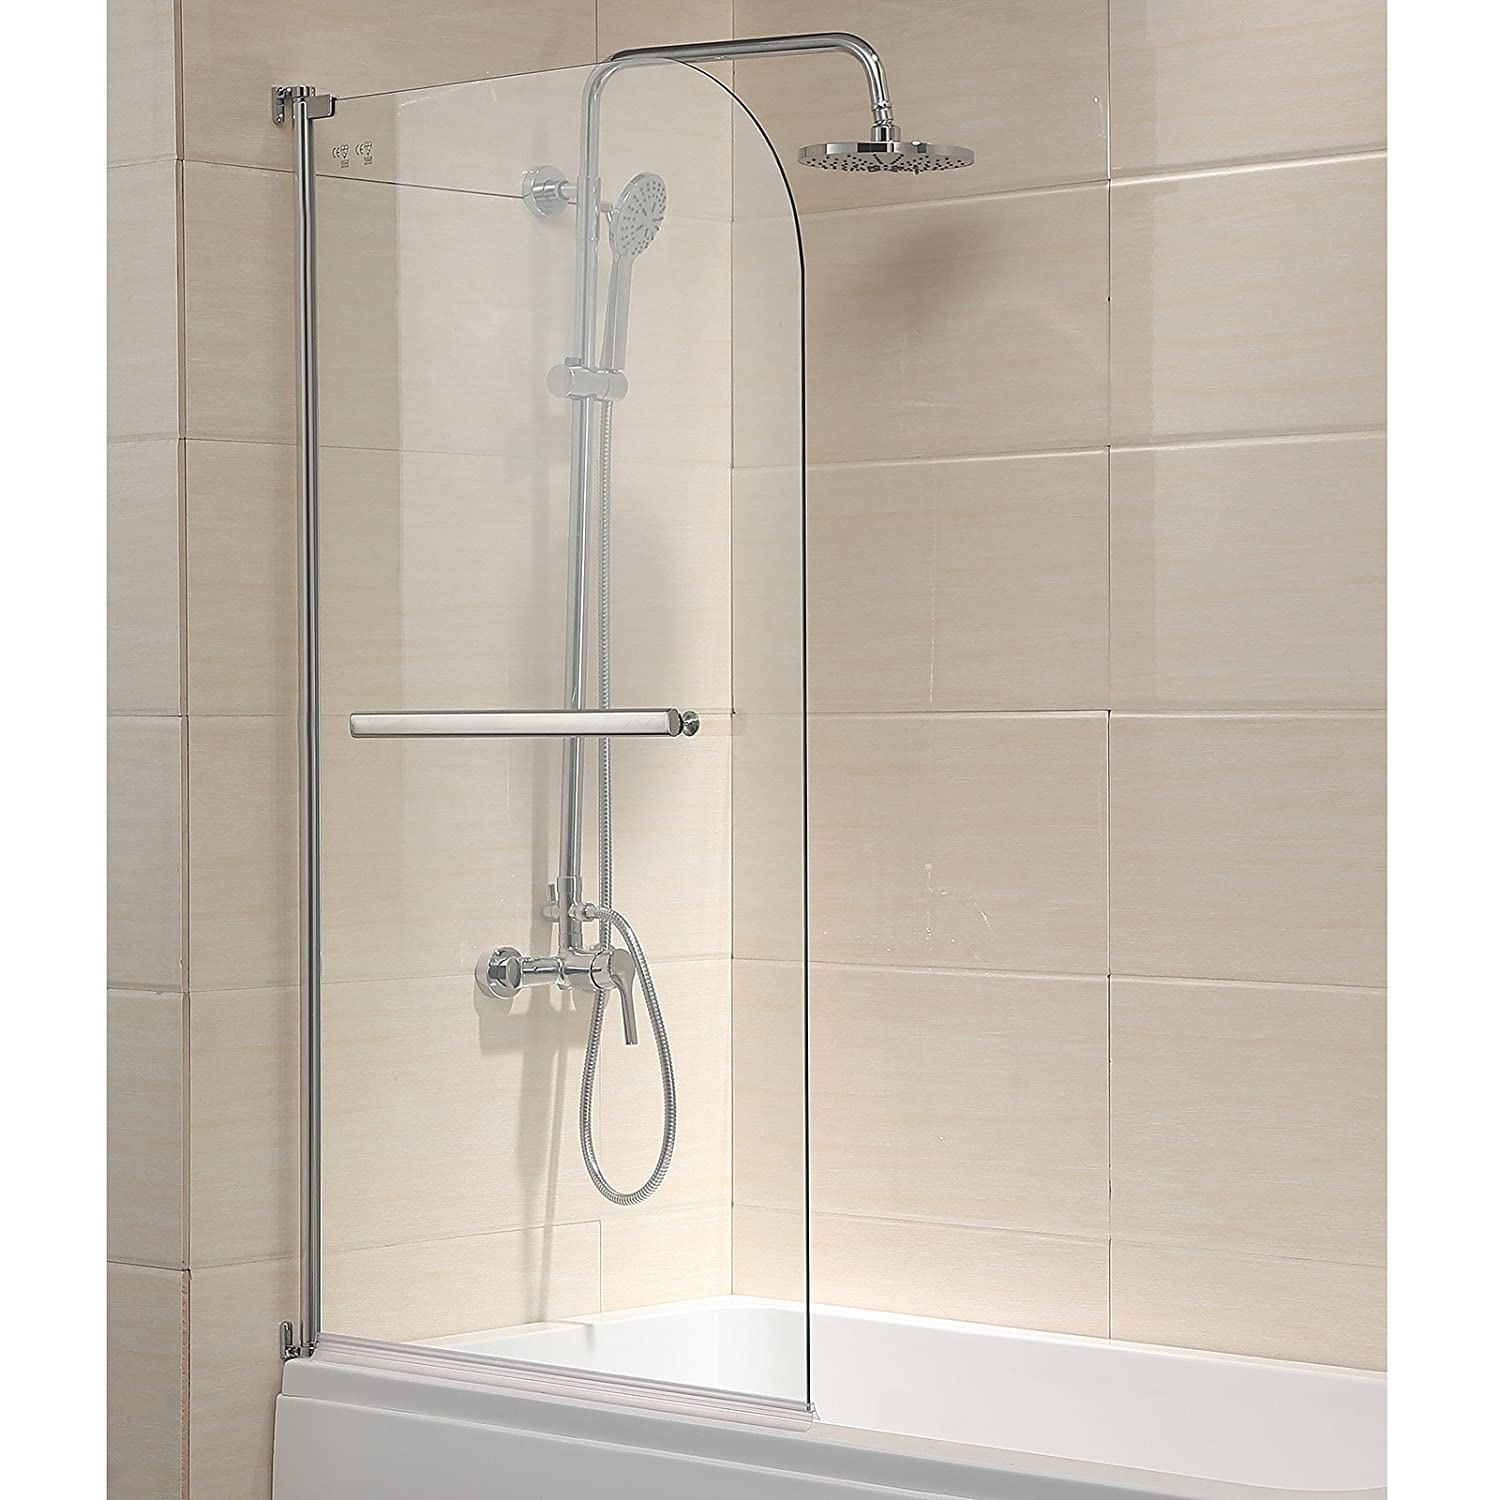 WaaGee 55X31 Radius Frameless Shower Door 1 4 Clear Glass Chrome